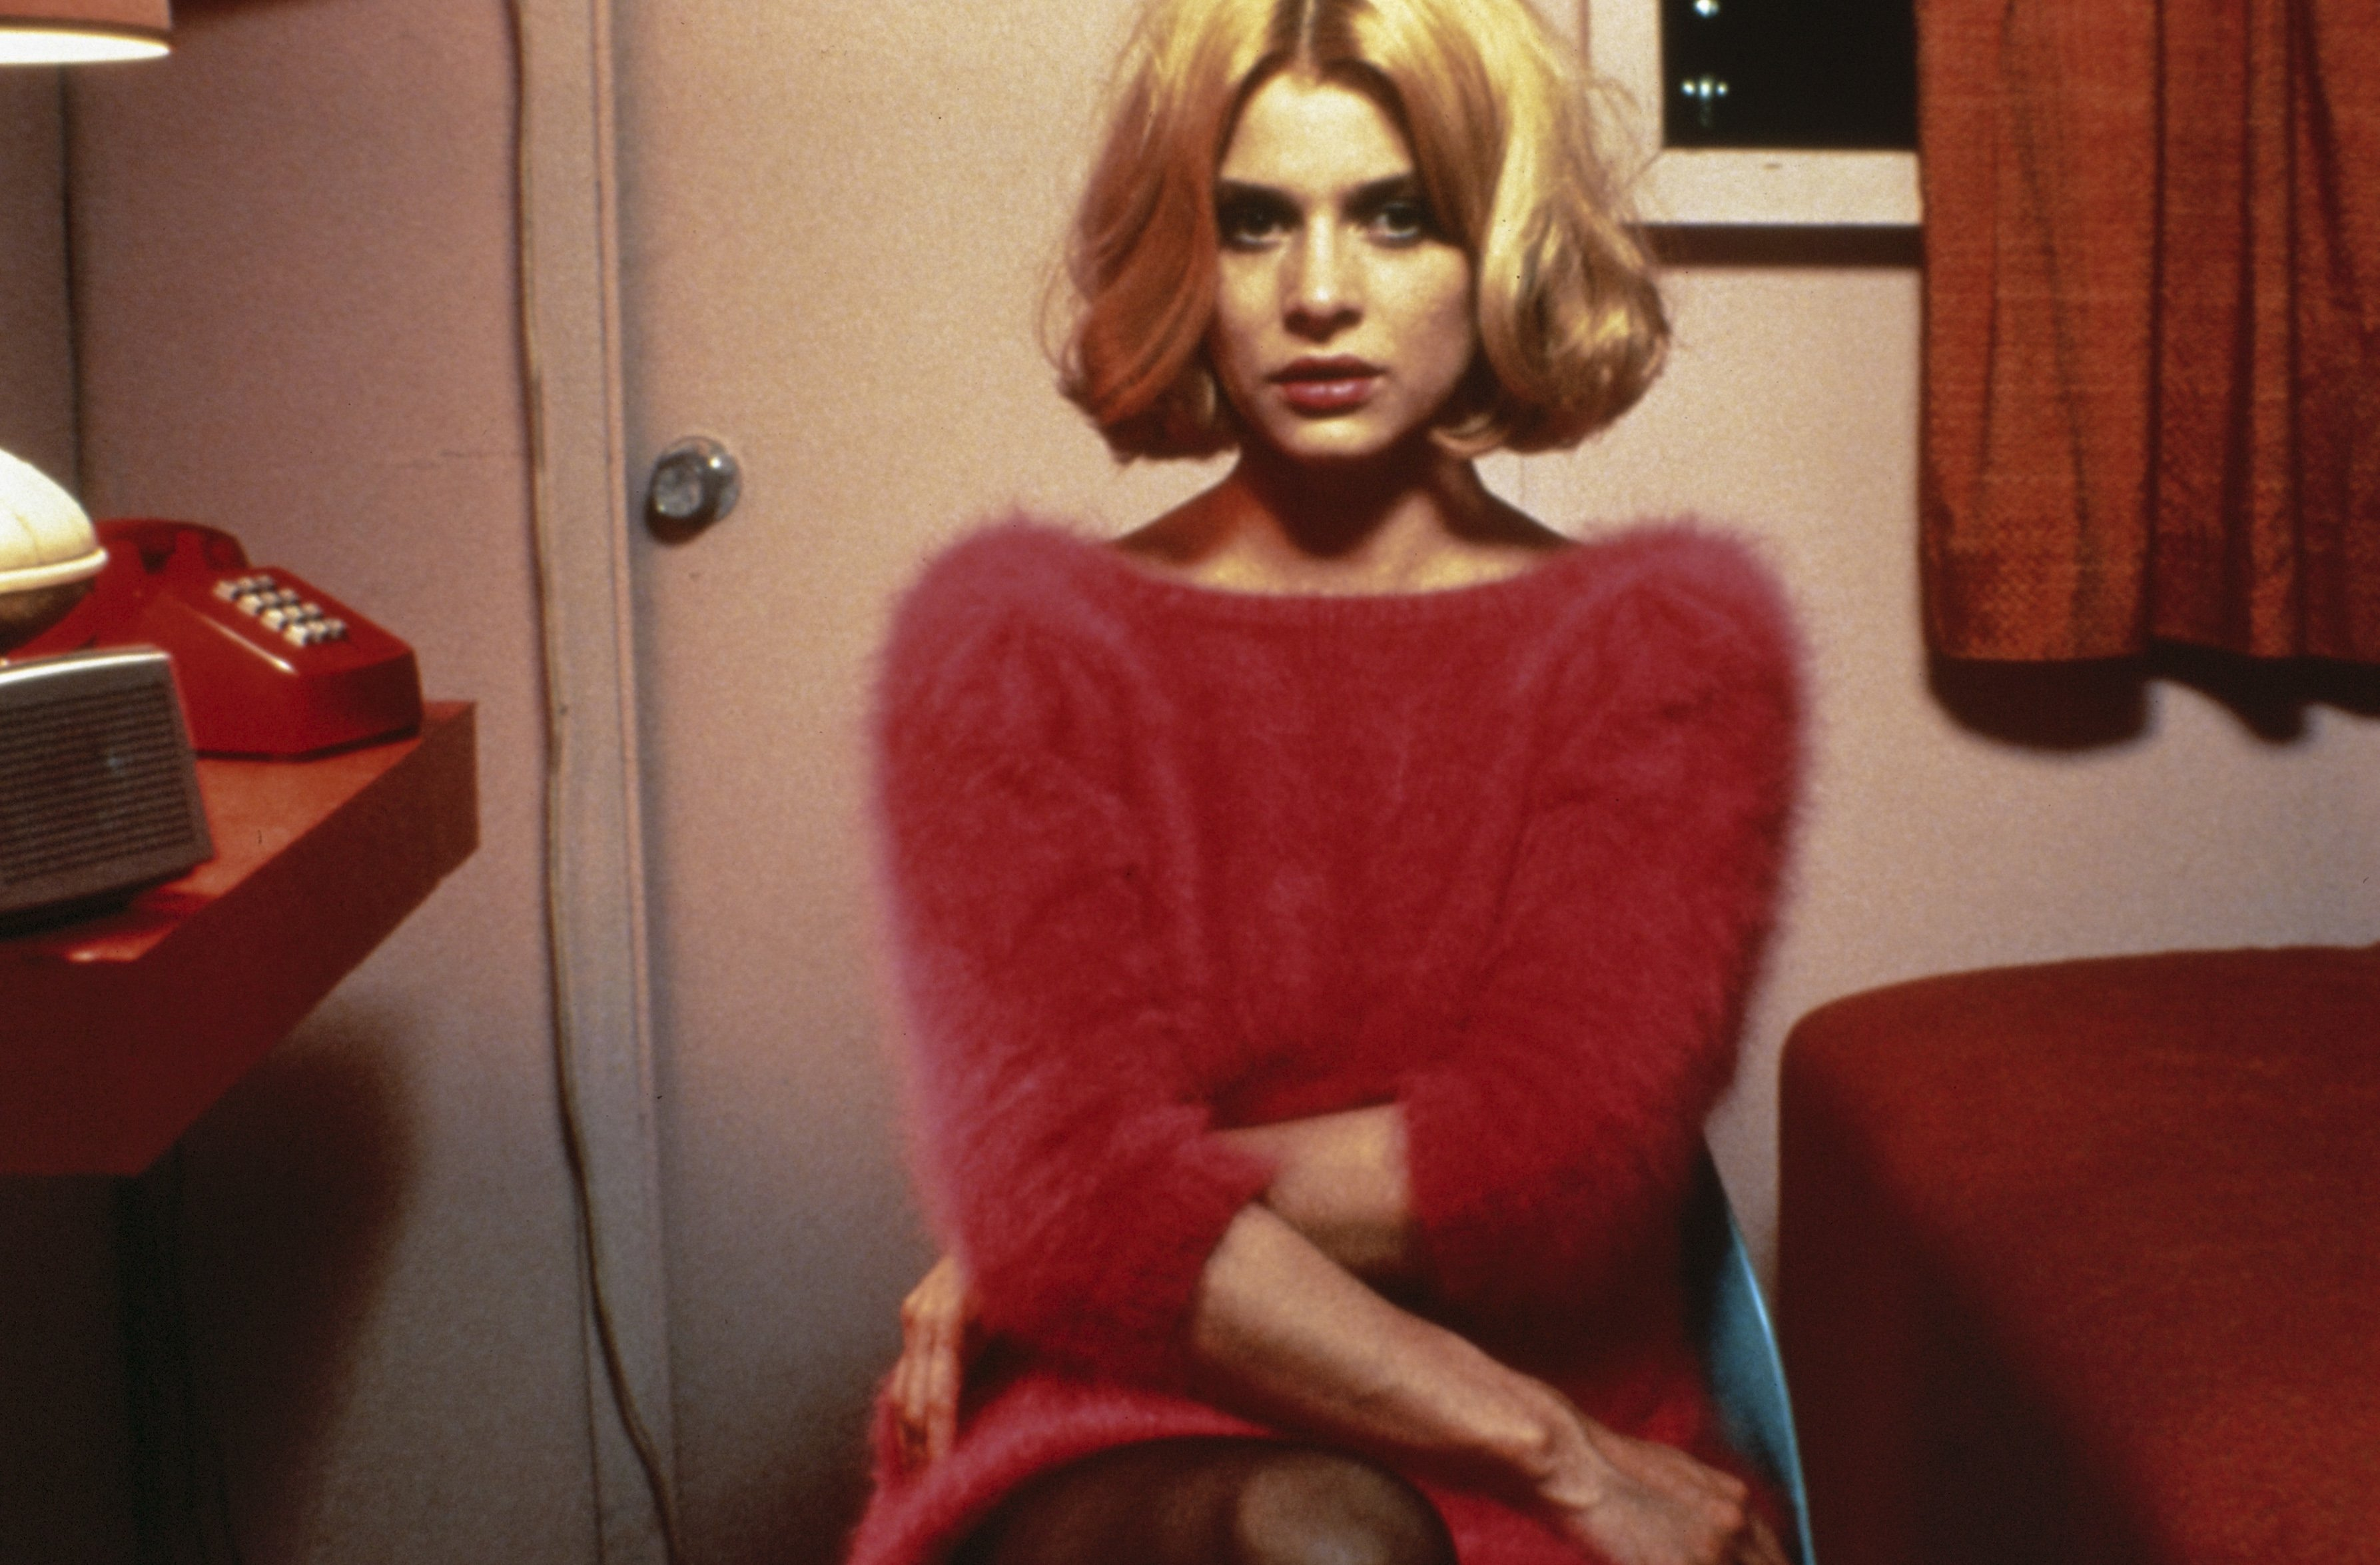 Production photo of Natassja Kinski in the film Paris, Texas (France/Federal Republic of Germany 1984, directed by Wim Wenders)